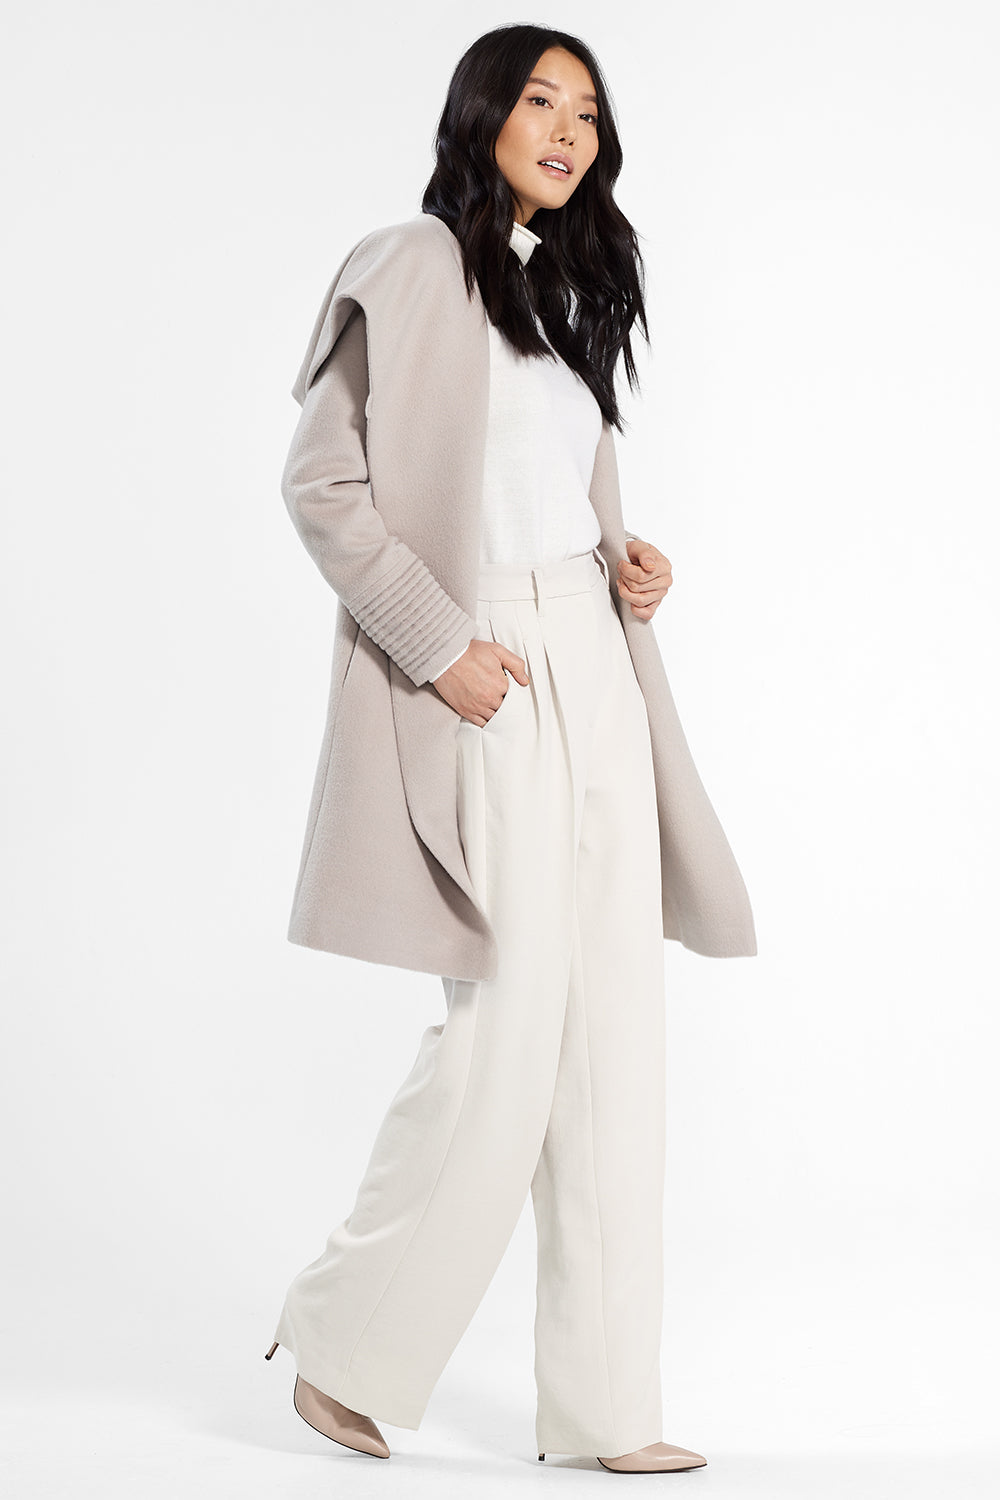 Sentaler Mid Length Hooded Wrap Coat featured in Baby Alpaca and available in Bleeker Beige. Seen from side.